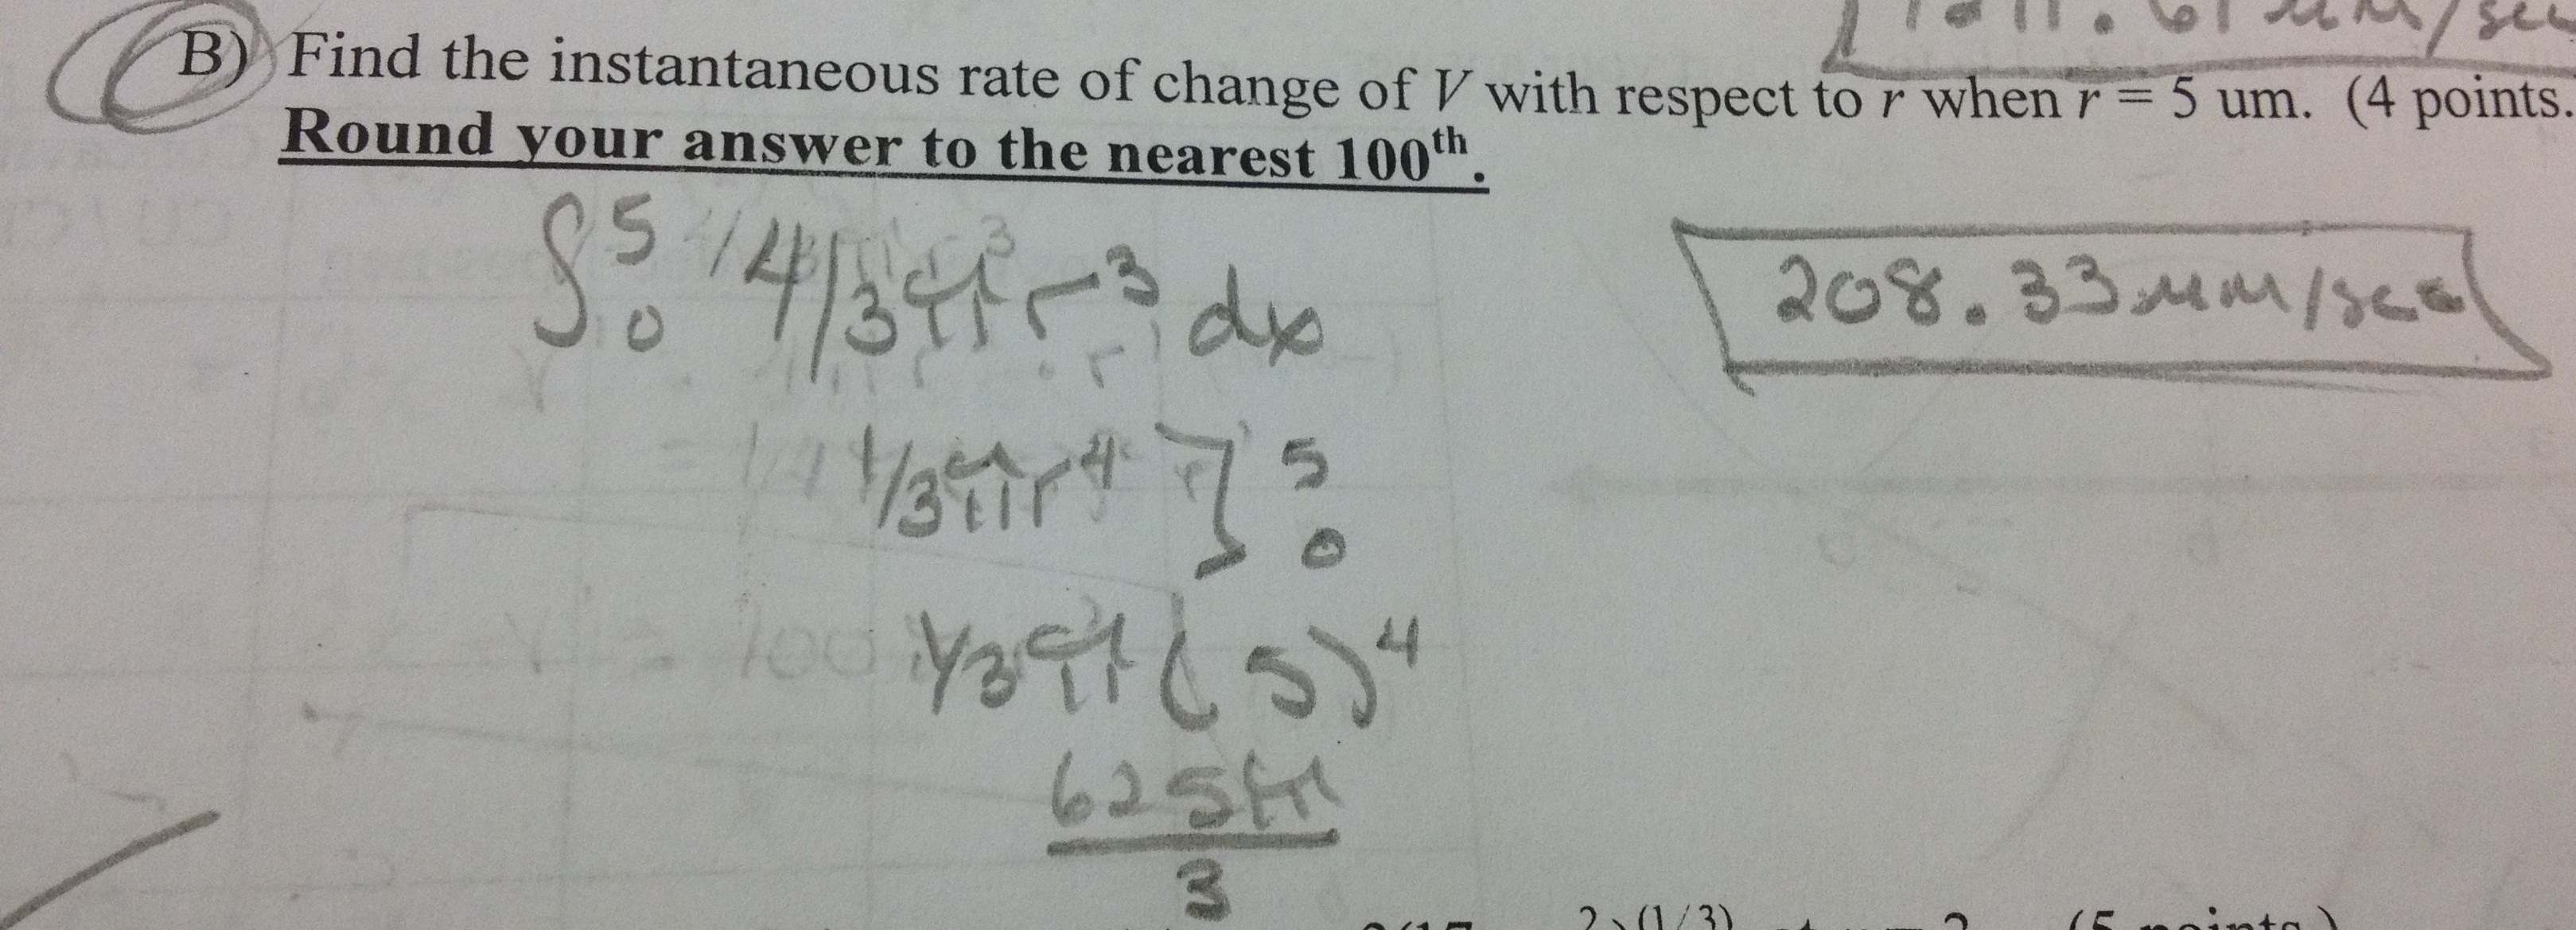 how to find average rate of change in volume